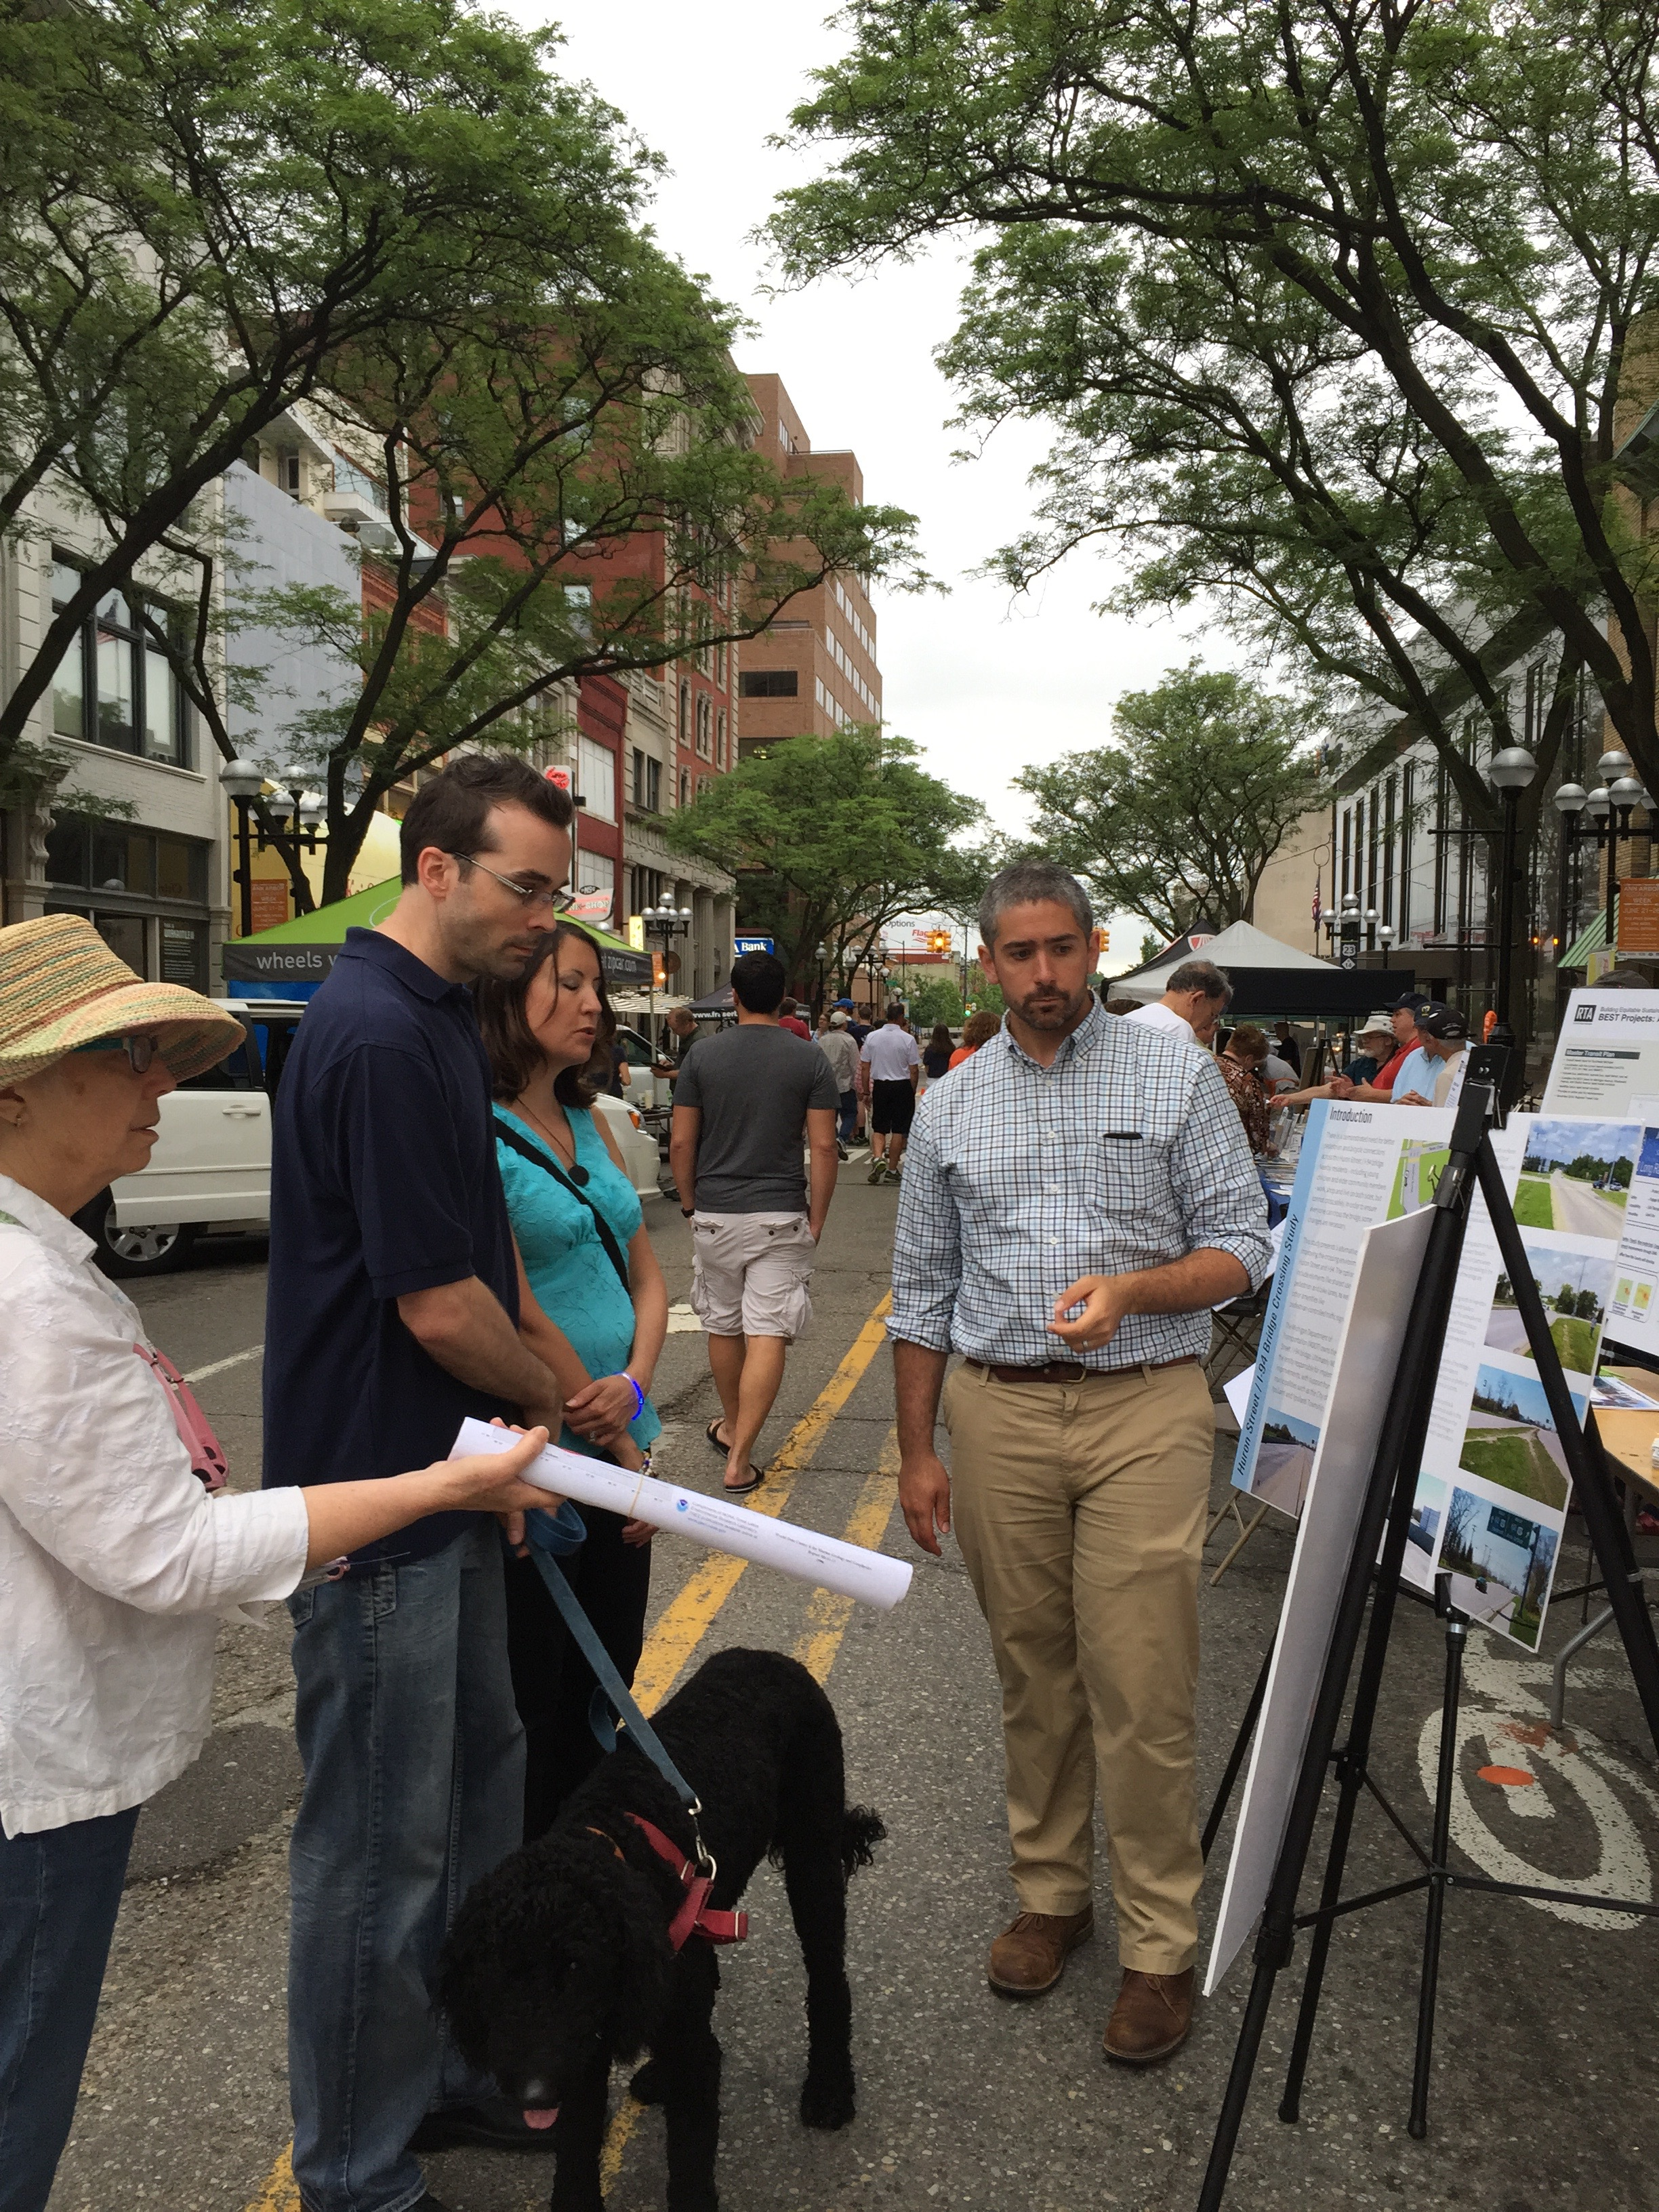 Transportation planner Mark Ferrall answering questions about the Huron over I-94 design project.